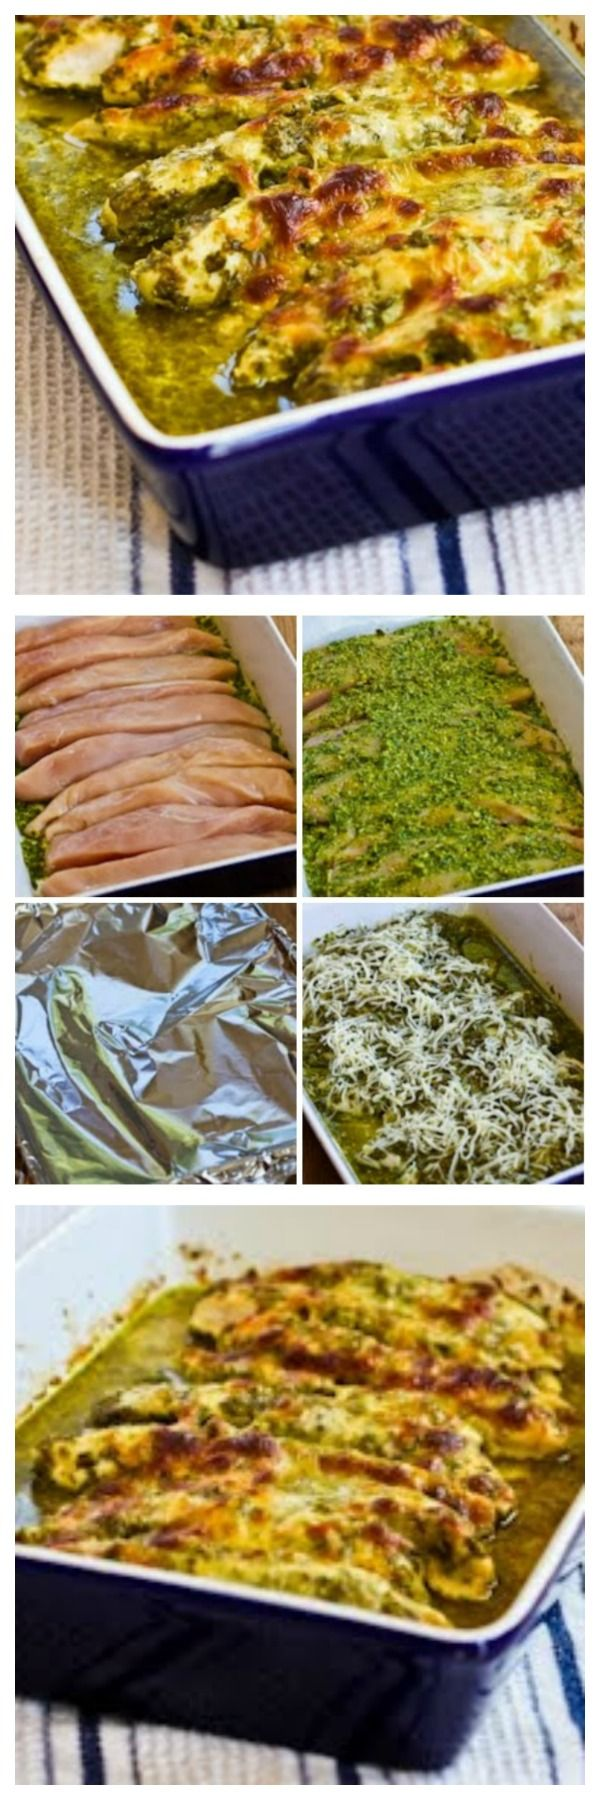 Baked Pesto Chicken is one of the most popular recipes on my blog, and this recipe is Low-Carb, Gluten-Free, and South Beach Phase One.  And this has been pinned 421K times, so the recipe has a lot of fans.  [from KalynsKitchen] #LowCarb #GlutenFree